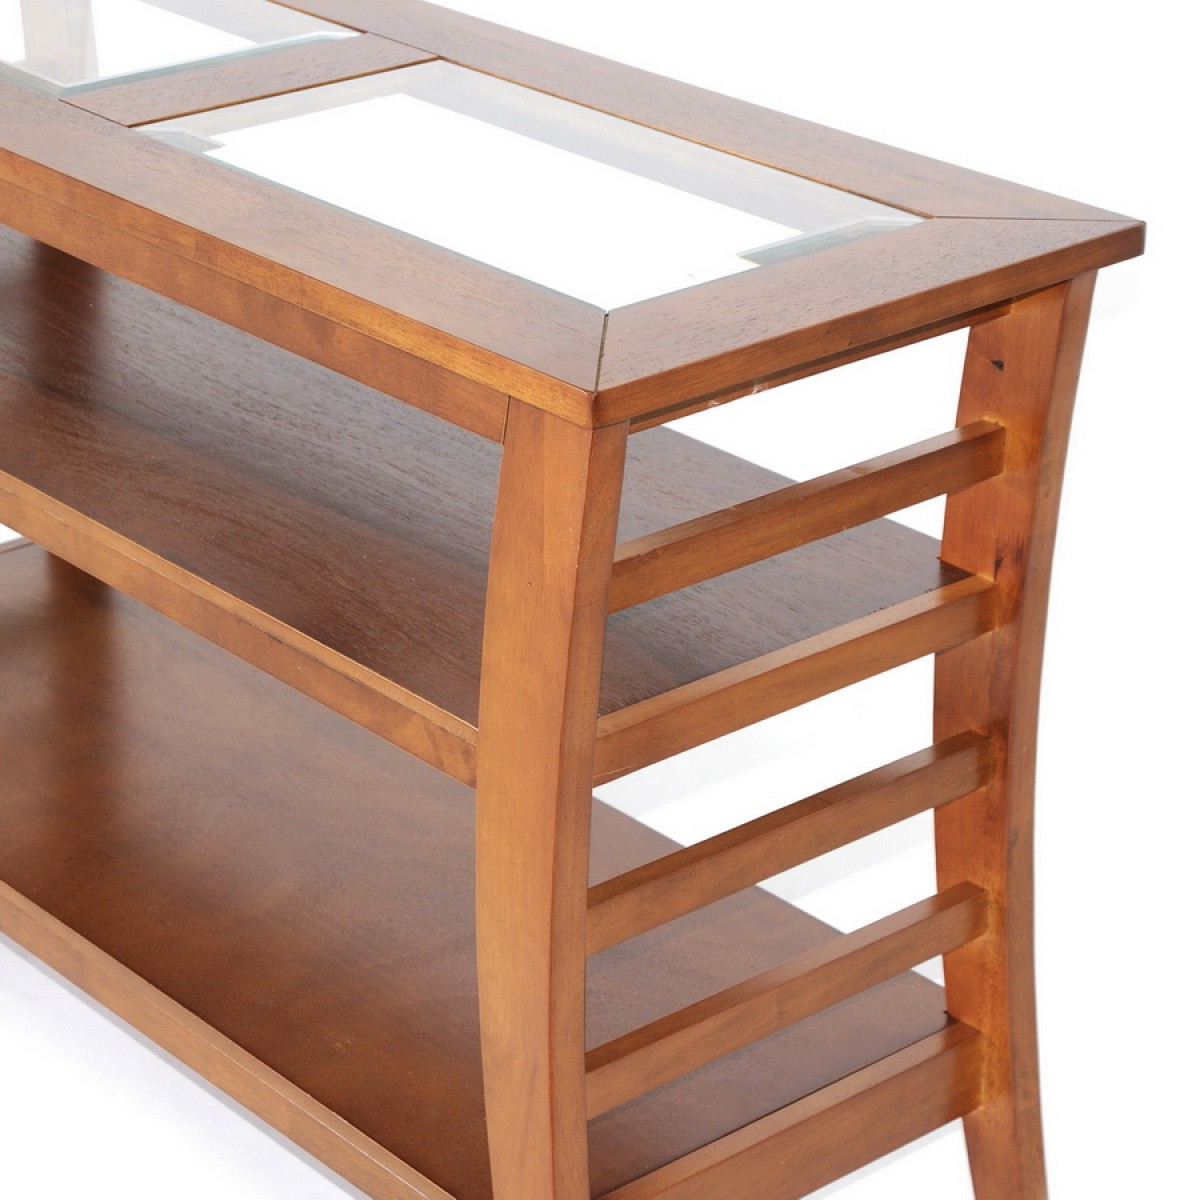 Allison Honey Brown Wood Modern Console Table With Glass Inlay | See Intended For Orange Inlay Console Tables (Gallery 20 of 20)